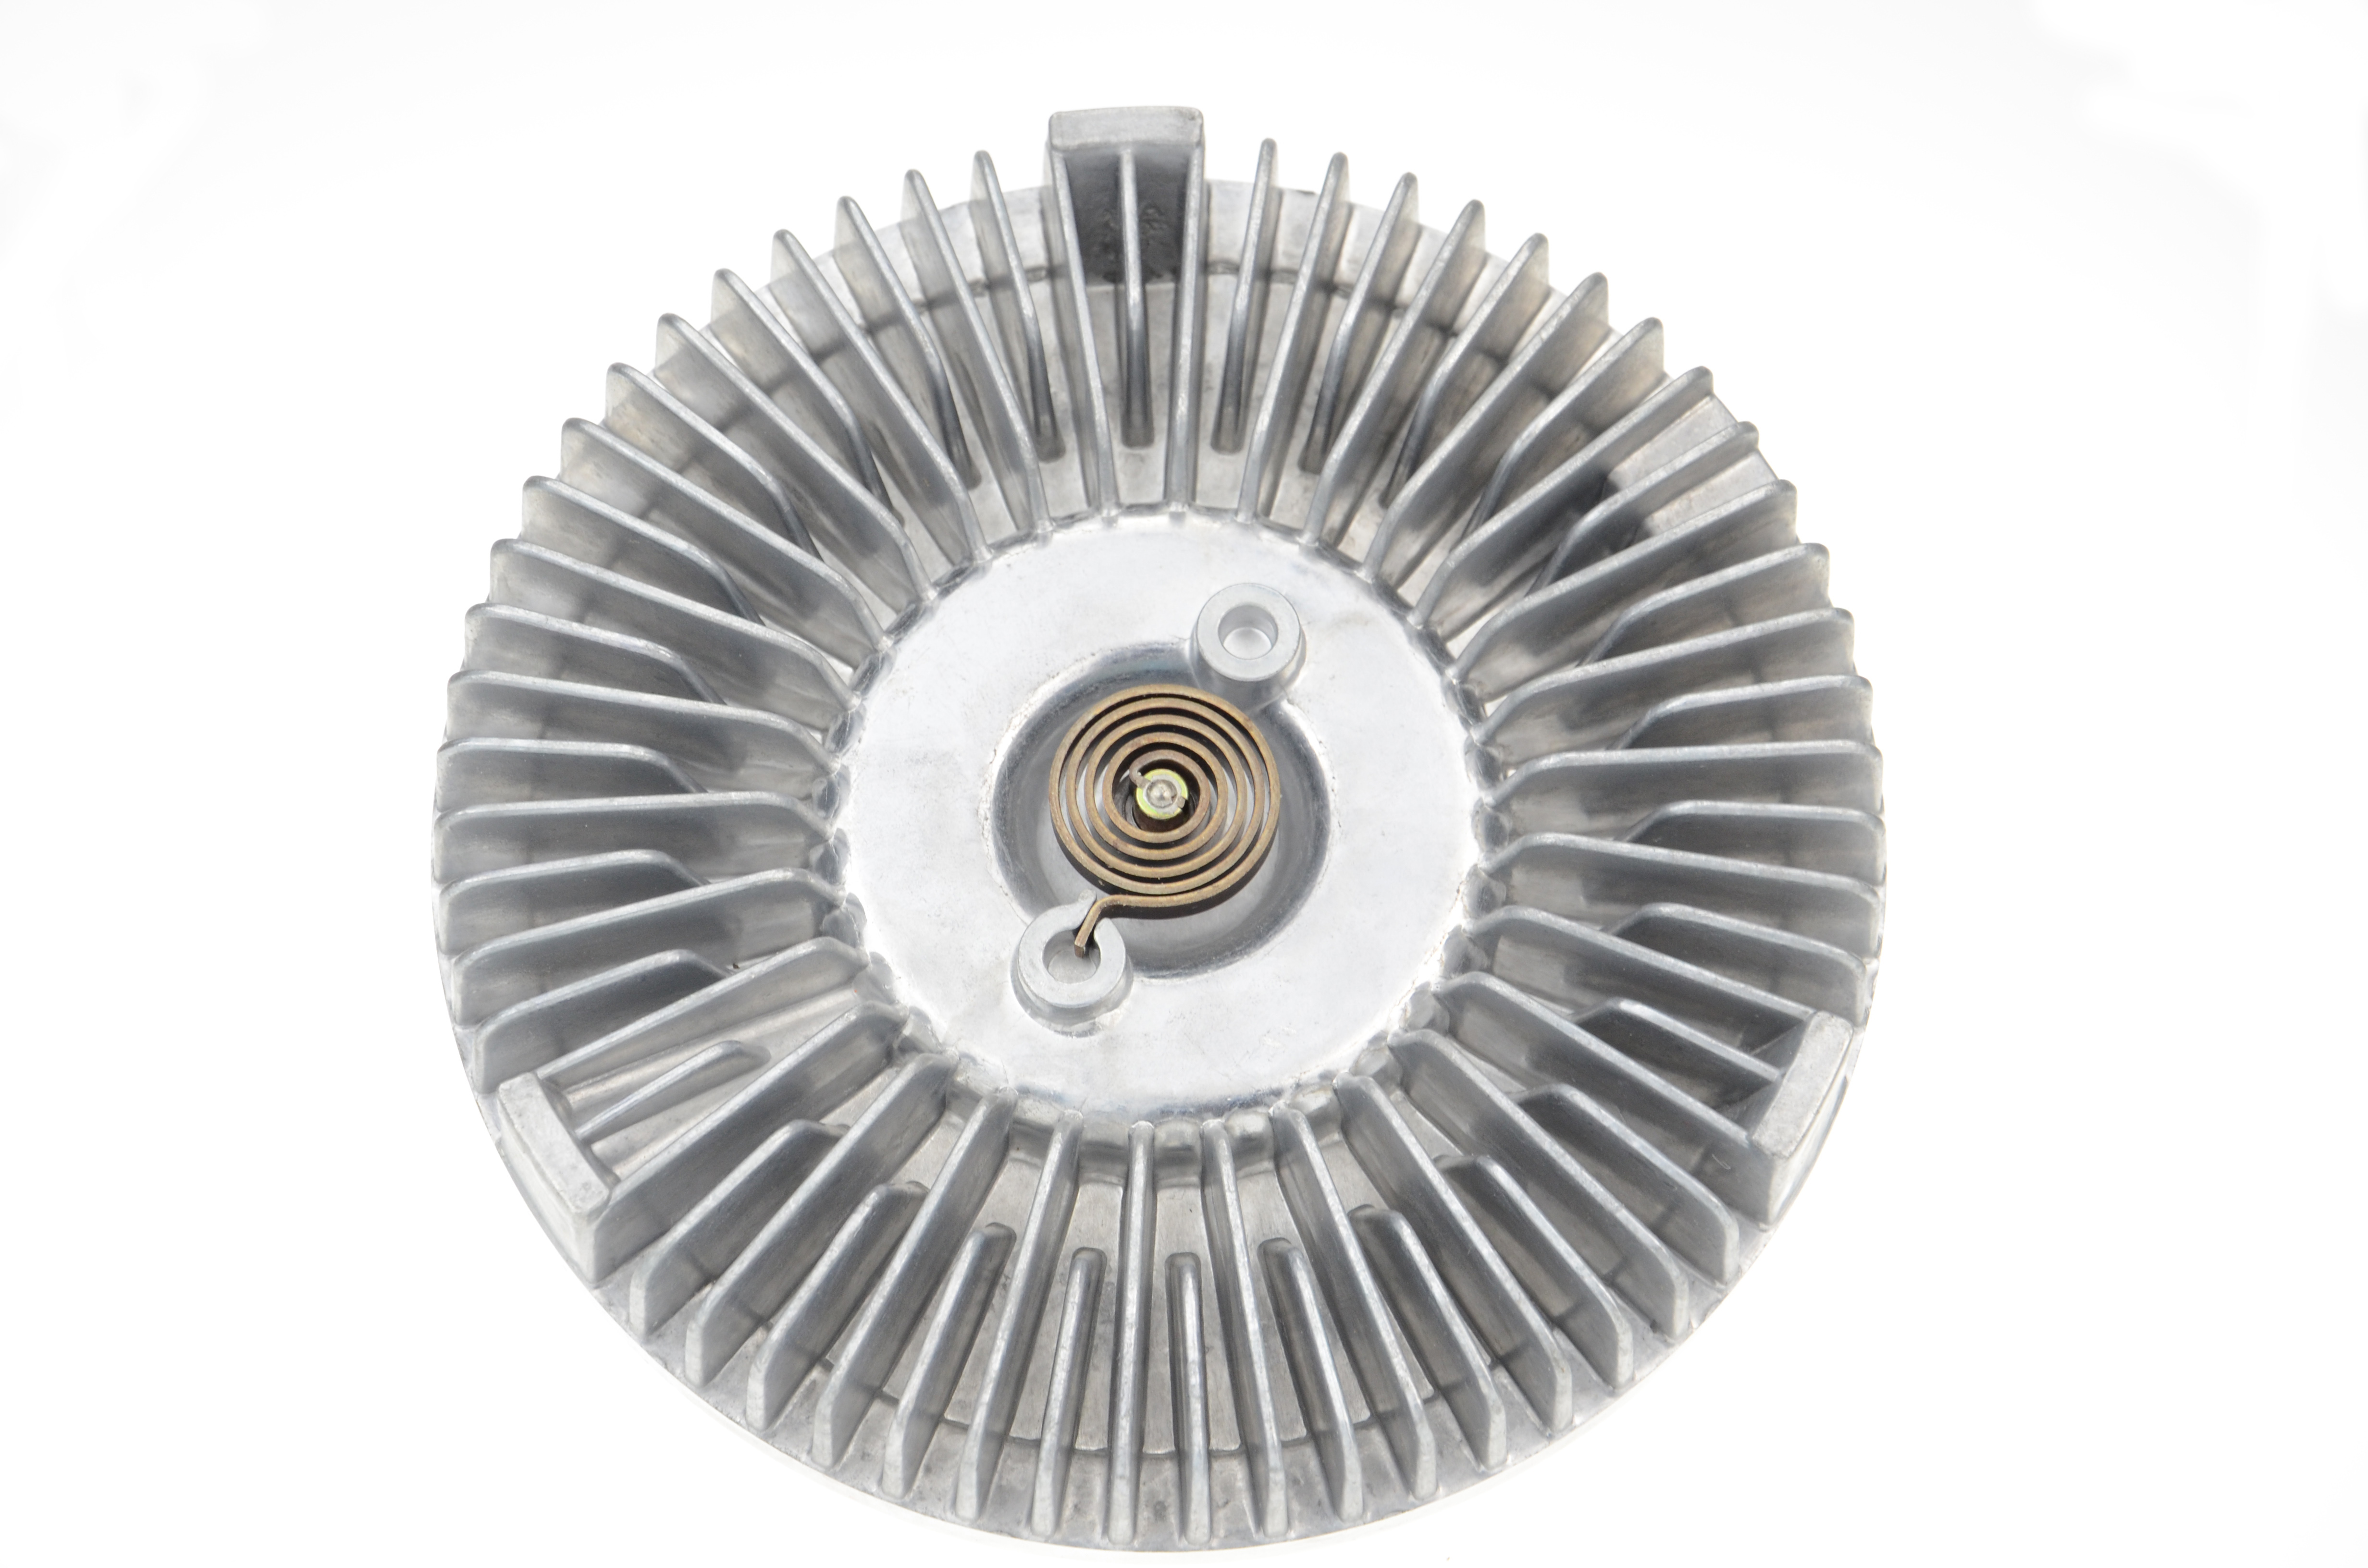 engine cooling fan clutch fit jeep grand cherokee zj 93 98 i6 4 0l ohv 52027823 one year quality warranty 30 days free return in fans kits from  [ 4928 x 3264 Pixel ]